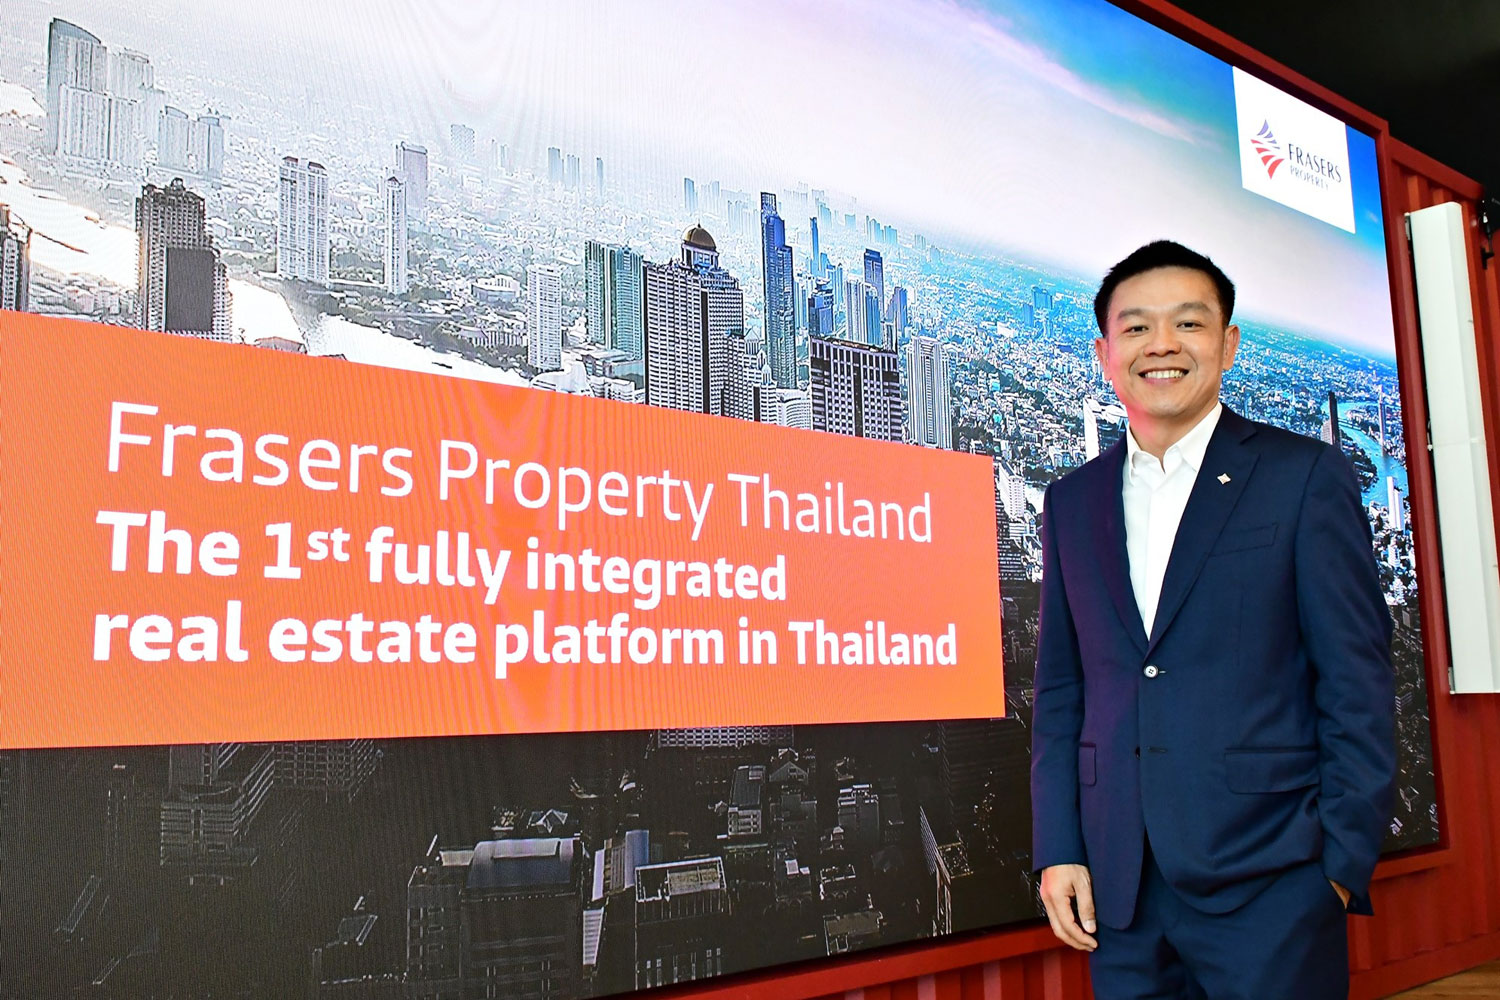 Frasers Property Thailand debenture 4.5 times oversubscribed